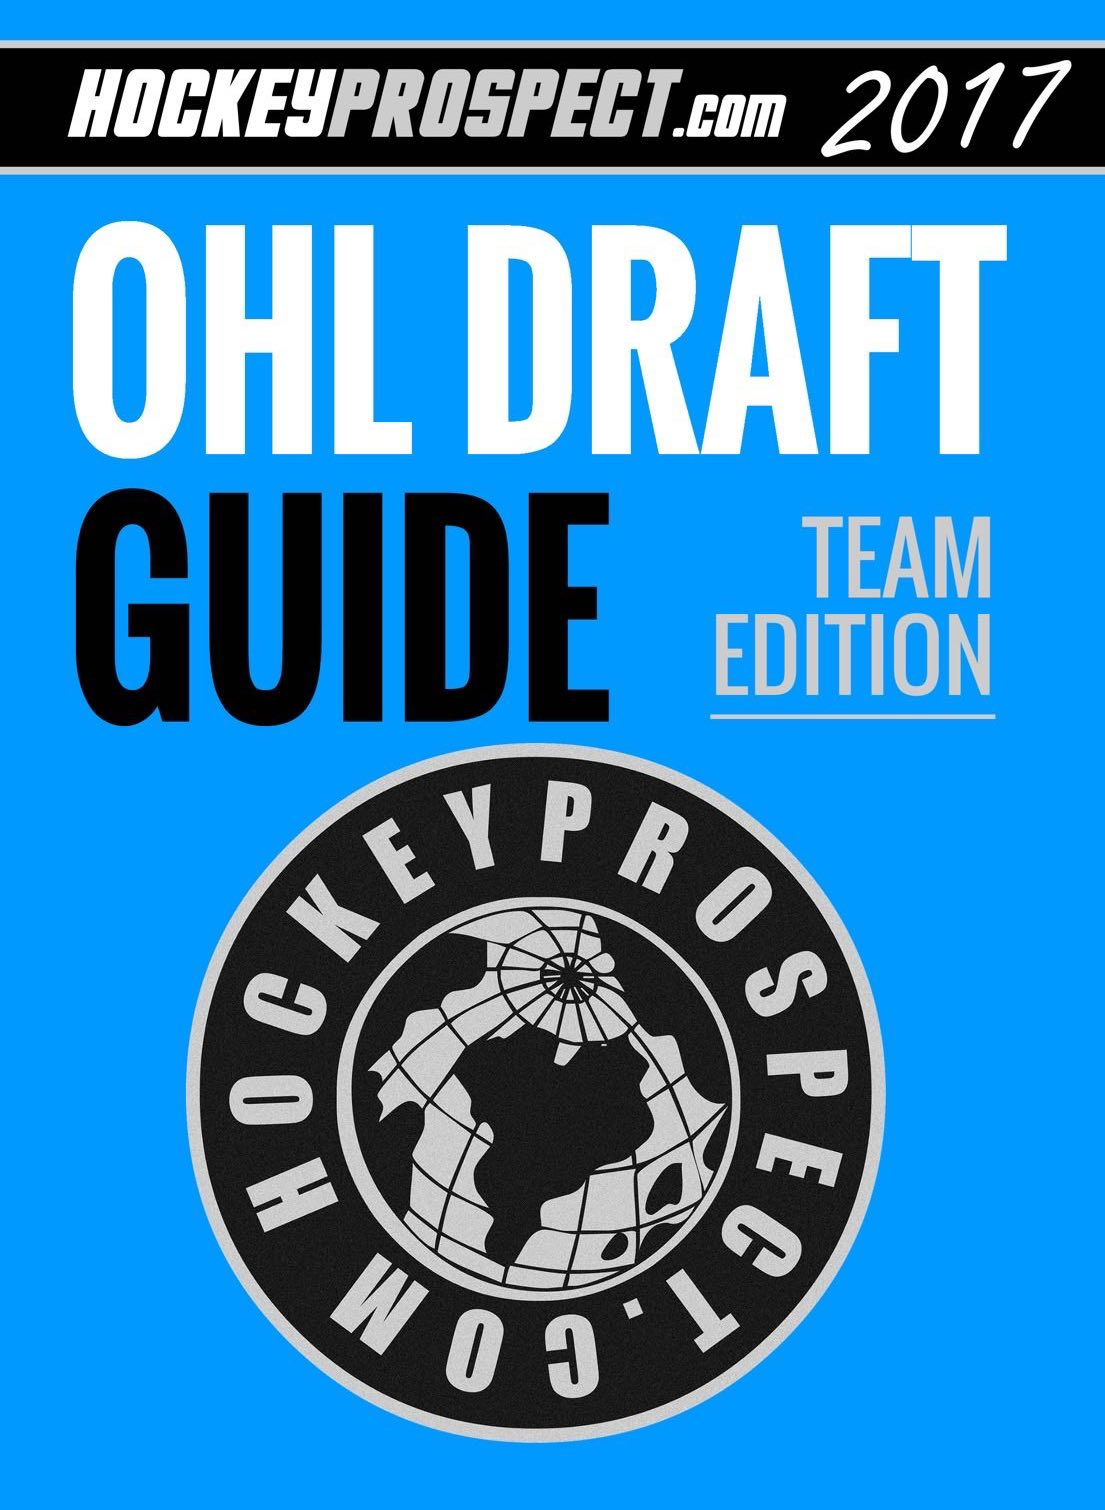 OHL Draft Team Edition